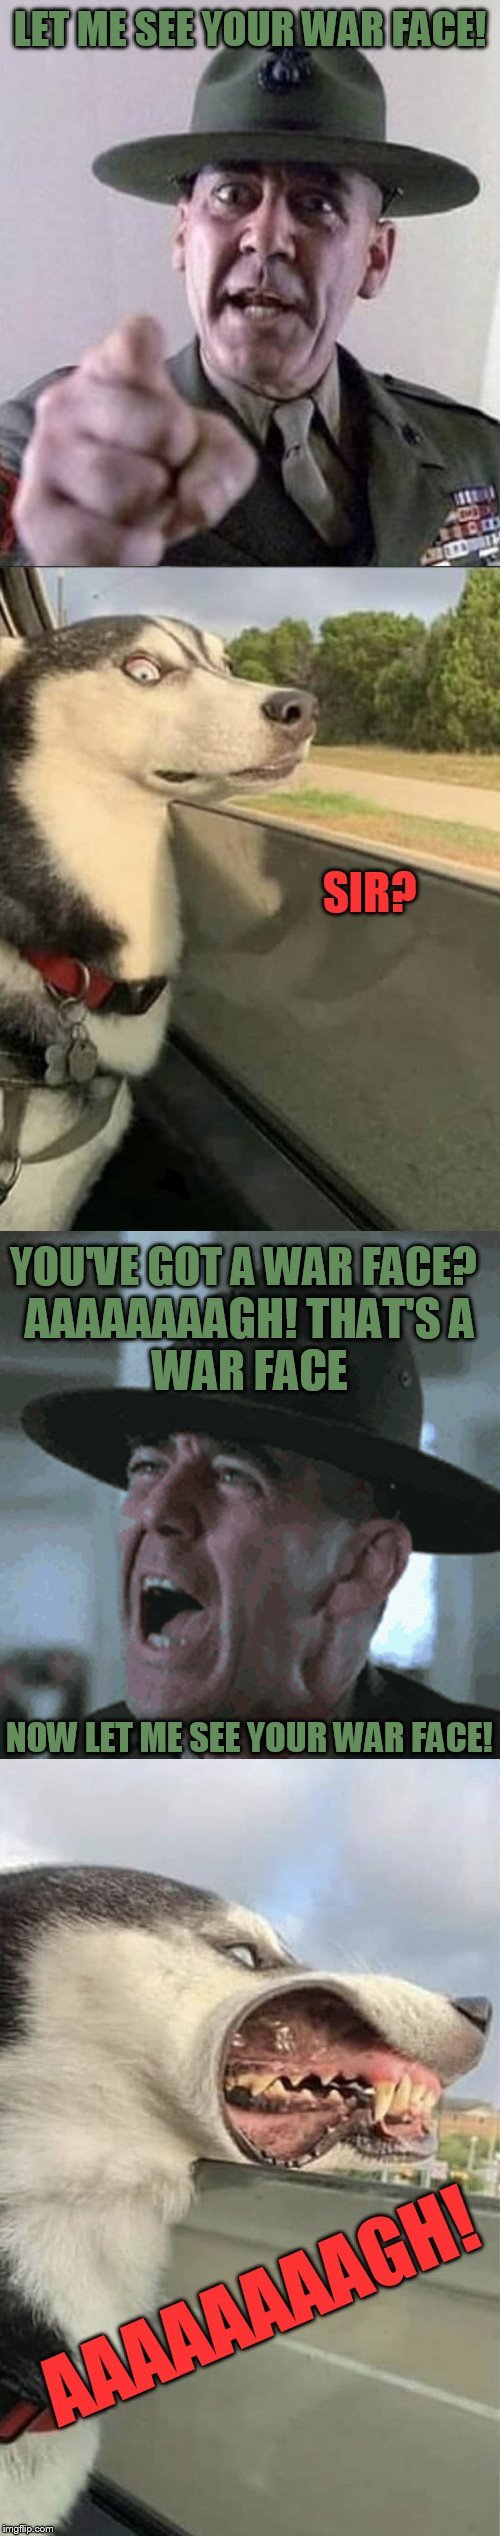 Full Metal Dog | LET ME SEE YOUR WAR FACE! SIR? YOU'VE GOT A WAR FACE? AAAAAAAAGH! THAT'S A WAR FACE; NOW LET ME SEE YOUR WAR FACE! AAAAAAAAGH! | image tagged in full metal jacket,movies,dogs,memes,gunnery sergeant hartman,r lee ermey | made w/ Imgflip meme maker